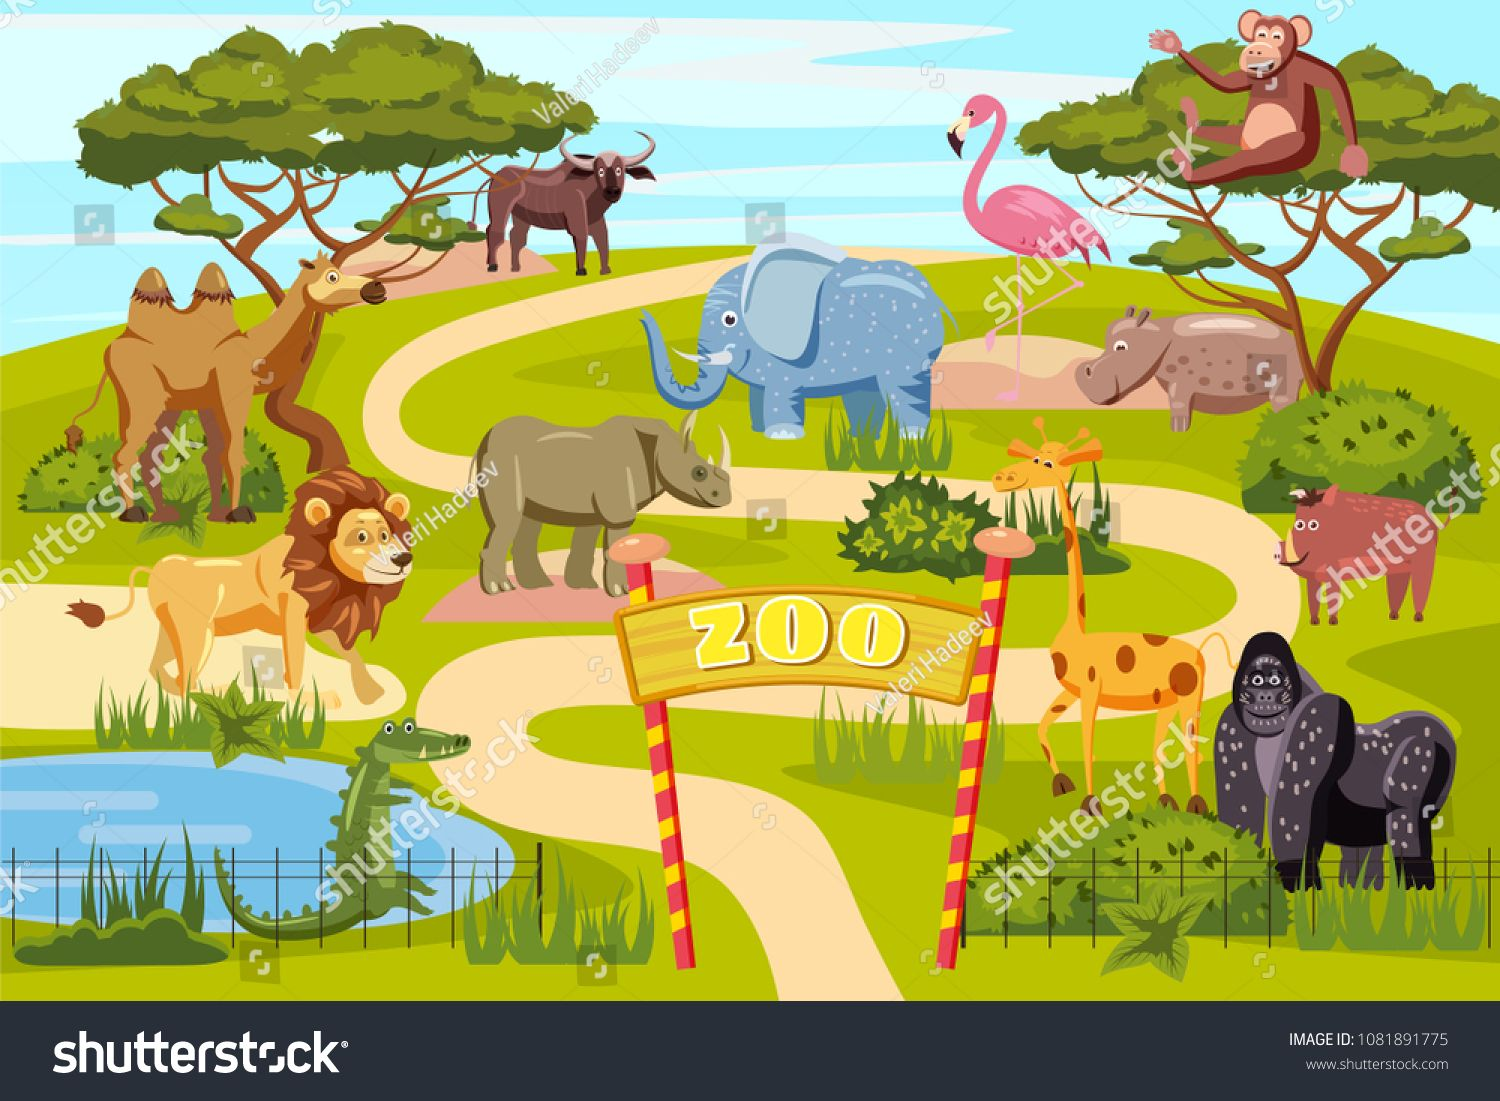 Zoo entrance gates cartoon poster with elephant giraffe